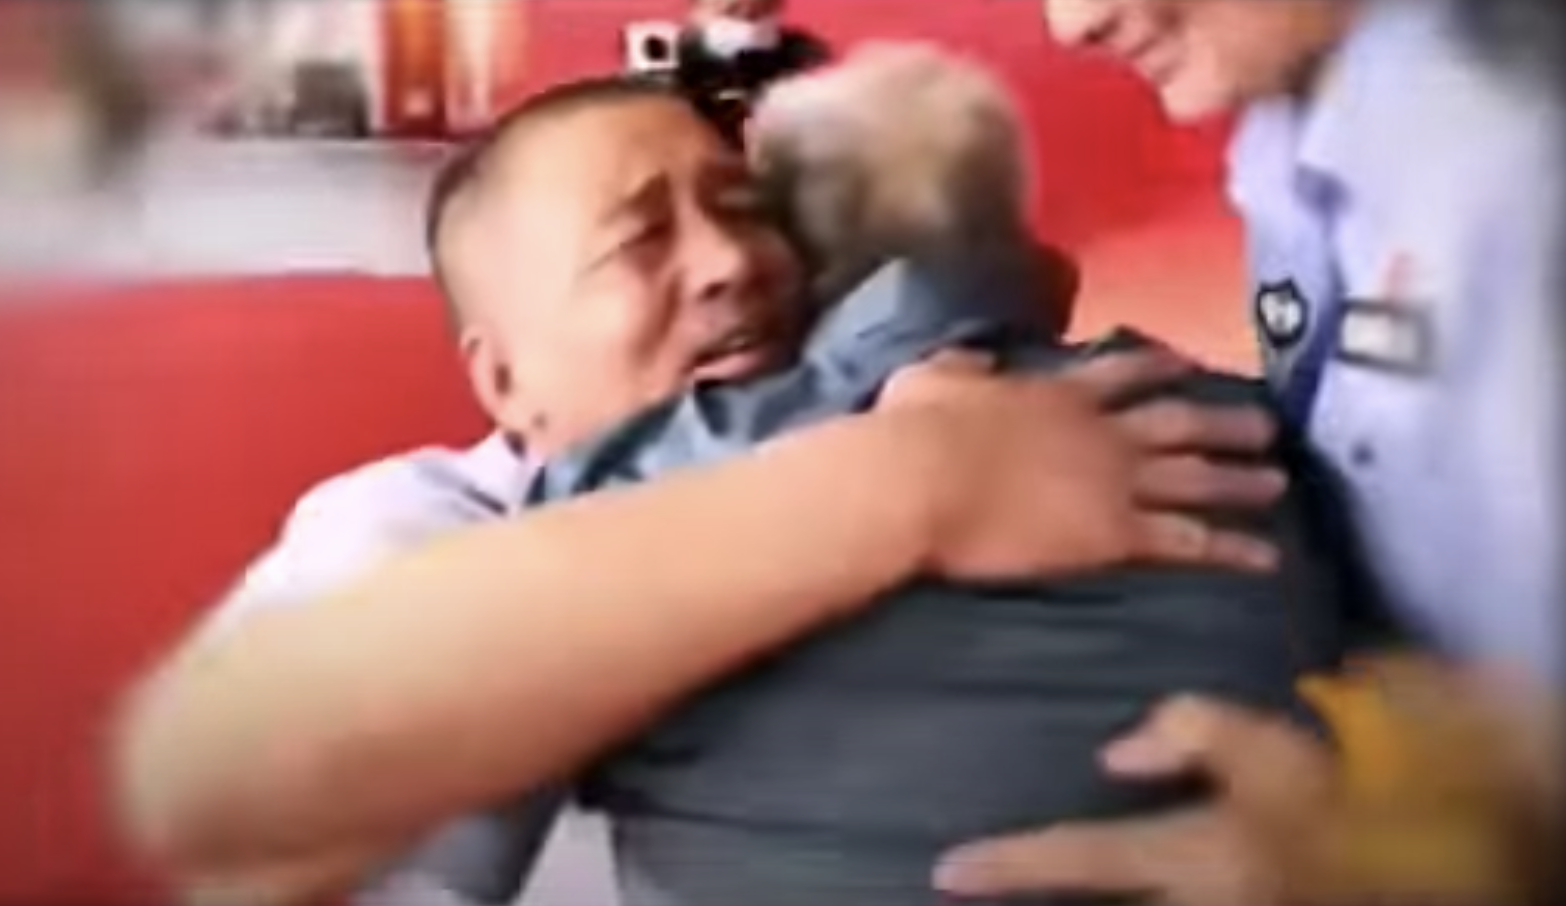 Watch: Dad has emotional reunion with son abducted 58 years ago